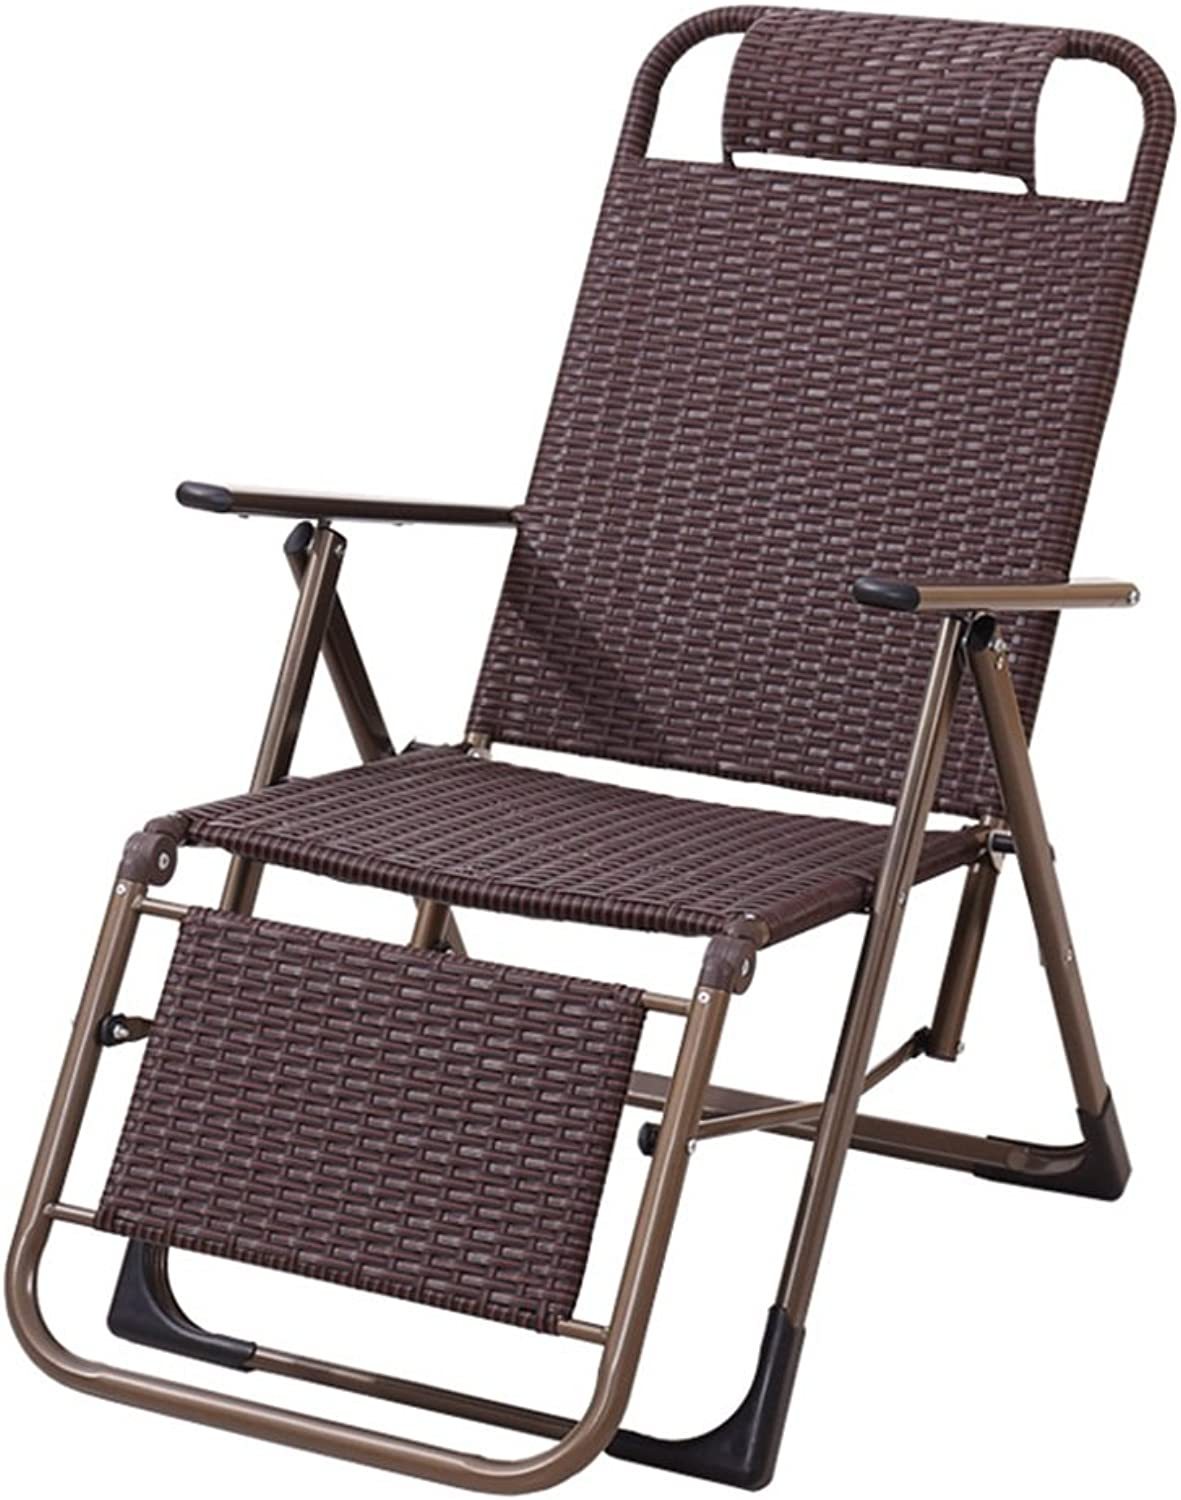 GSHWJS- trash can Folding Chair Lunch Break Couch Office Bed Recliner Back Lazy Chair Folding Chair (color   Straight Foot)